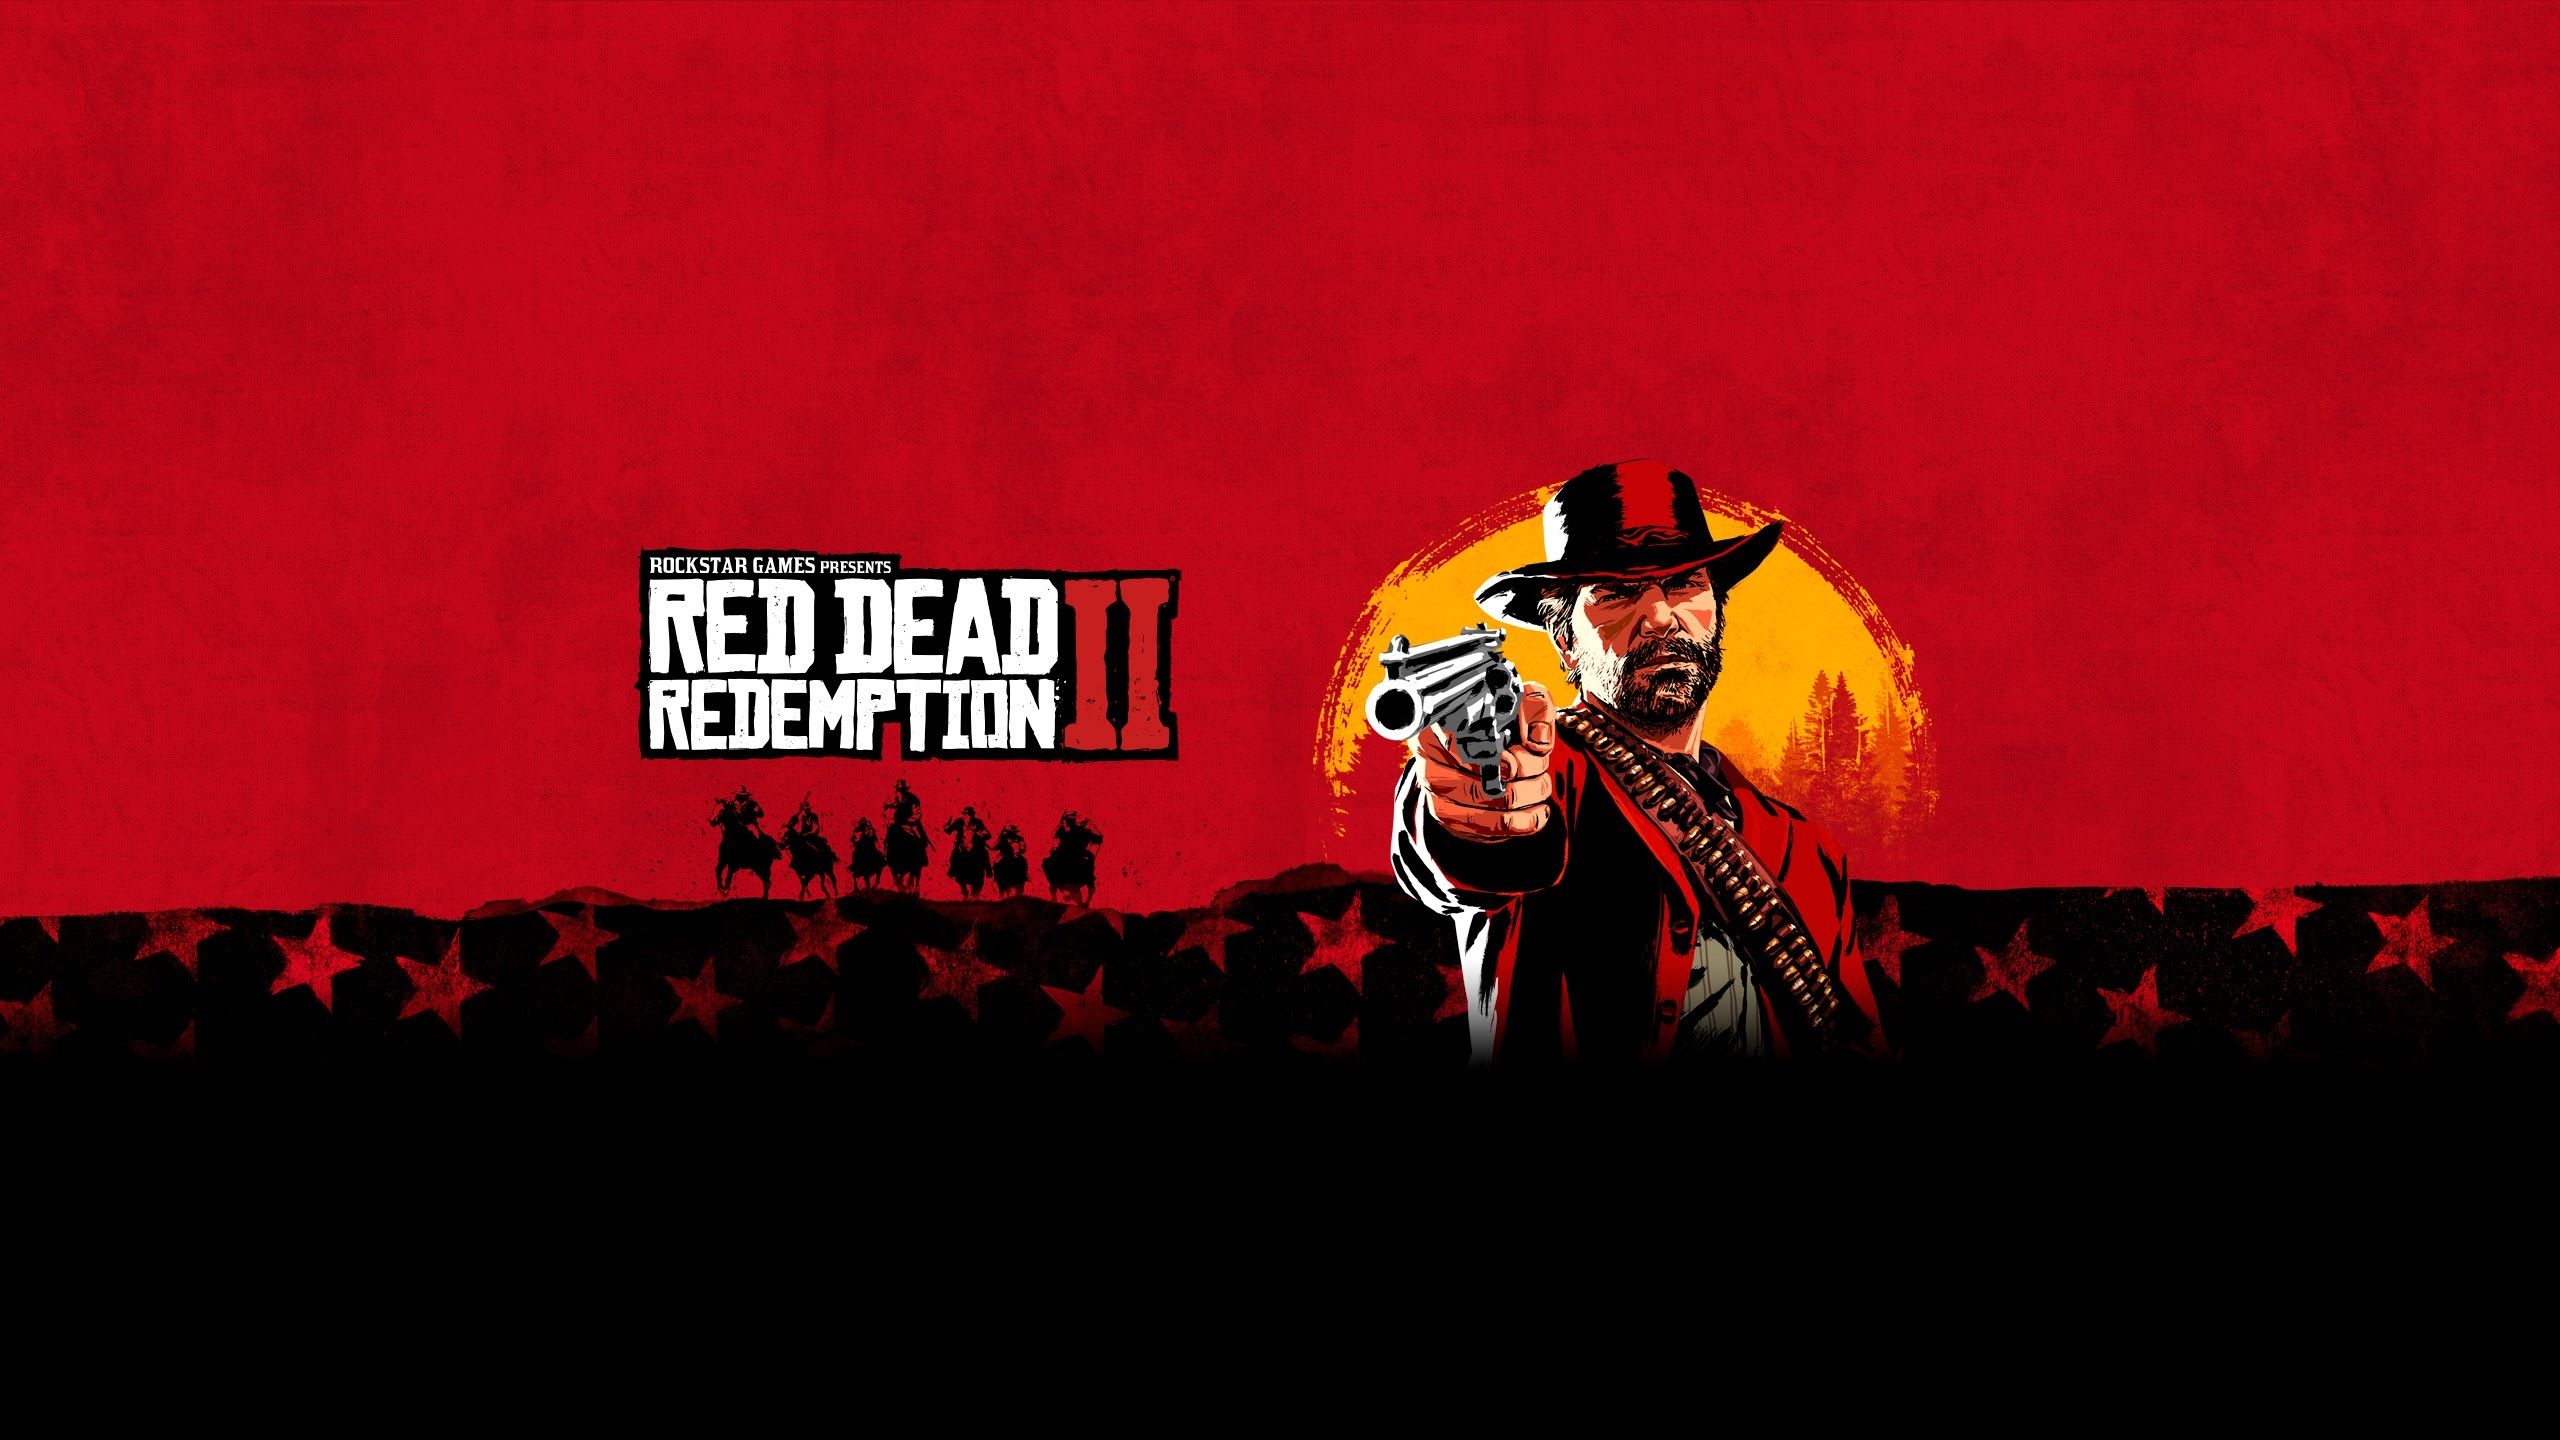 Red Dead Redemption 2 Hd Games 4k Wallpapers Images Backgrounds Photos And Pictures